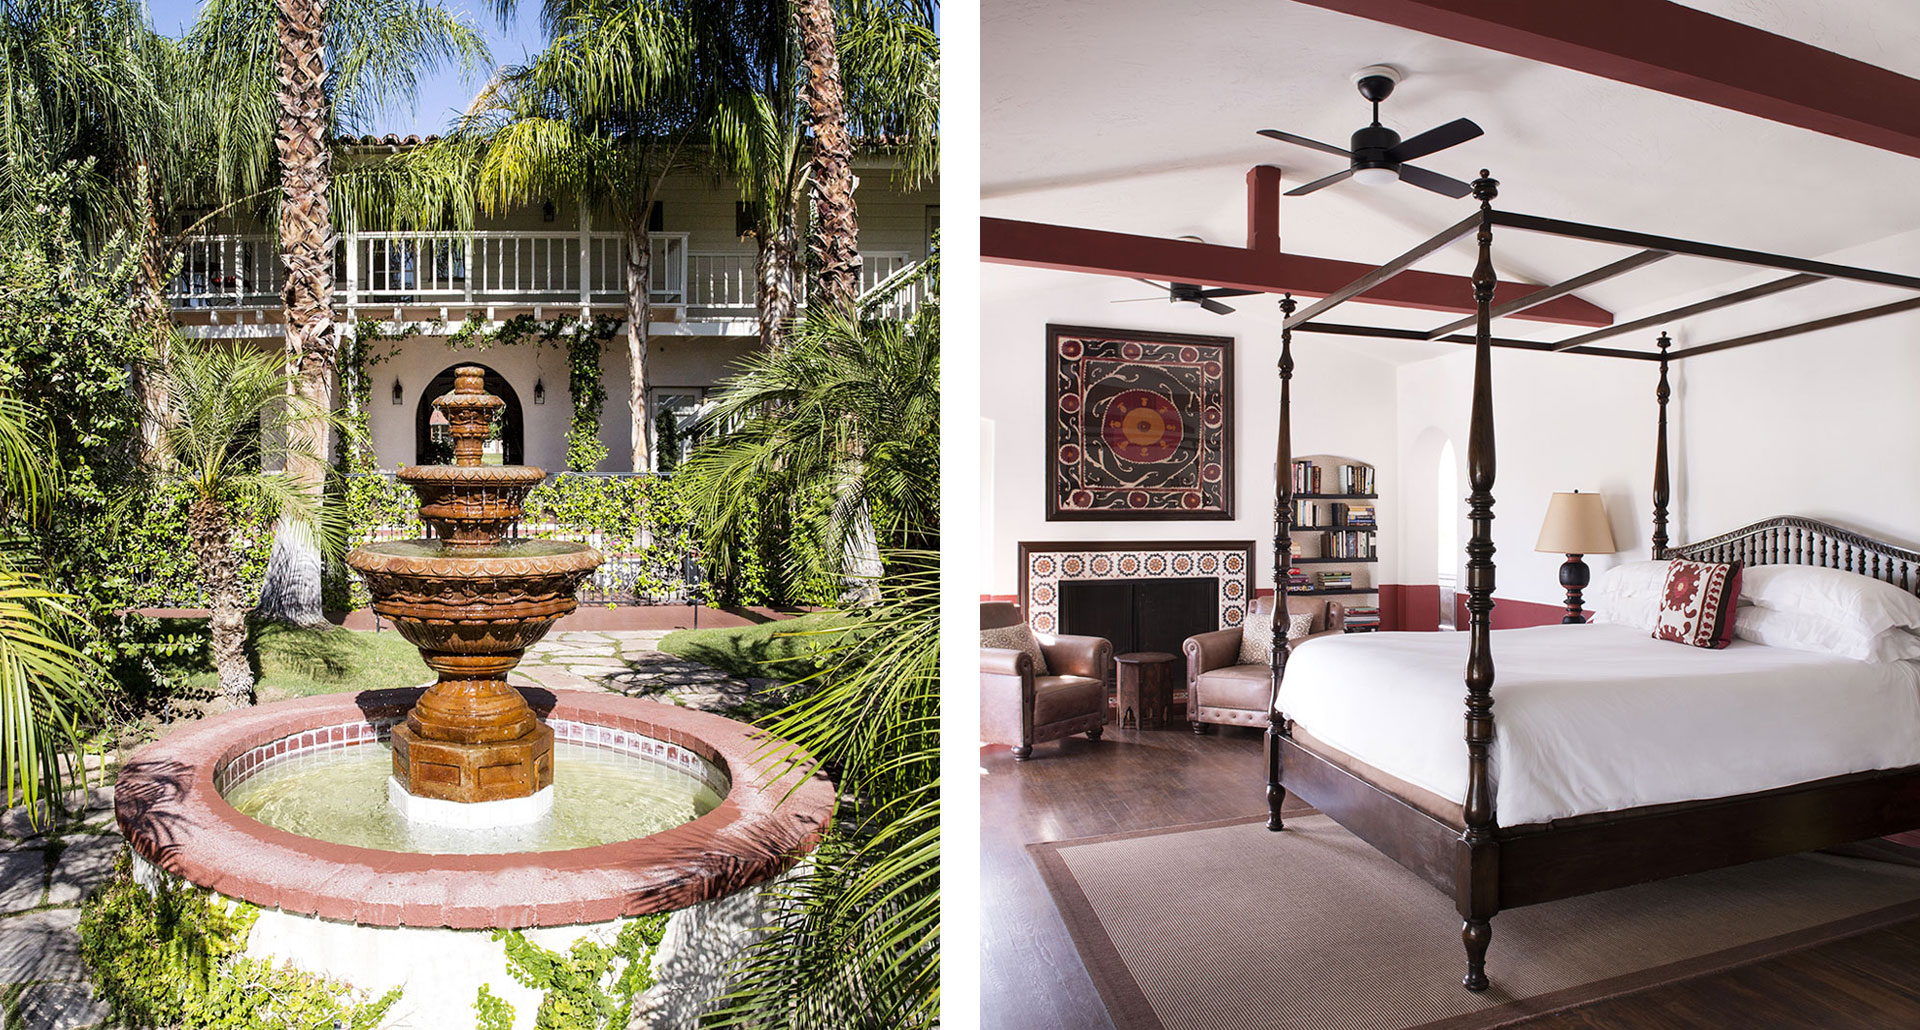 Colony Palms Hotel - boutique hotel in Palm Springs